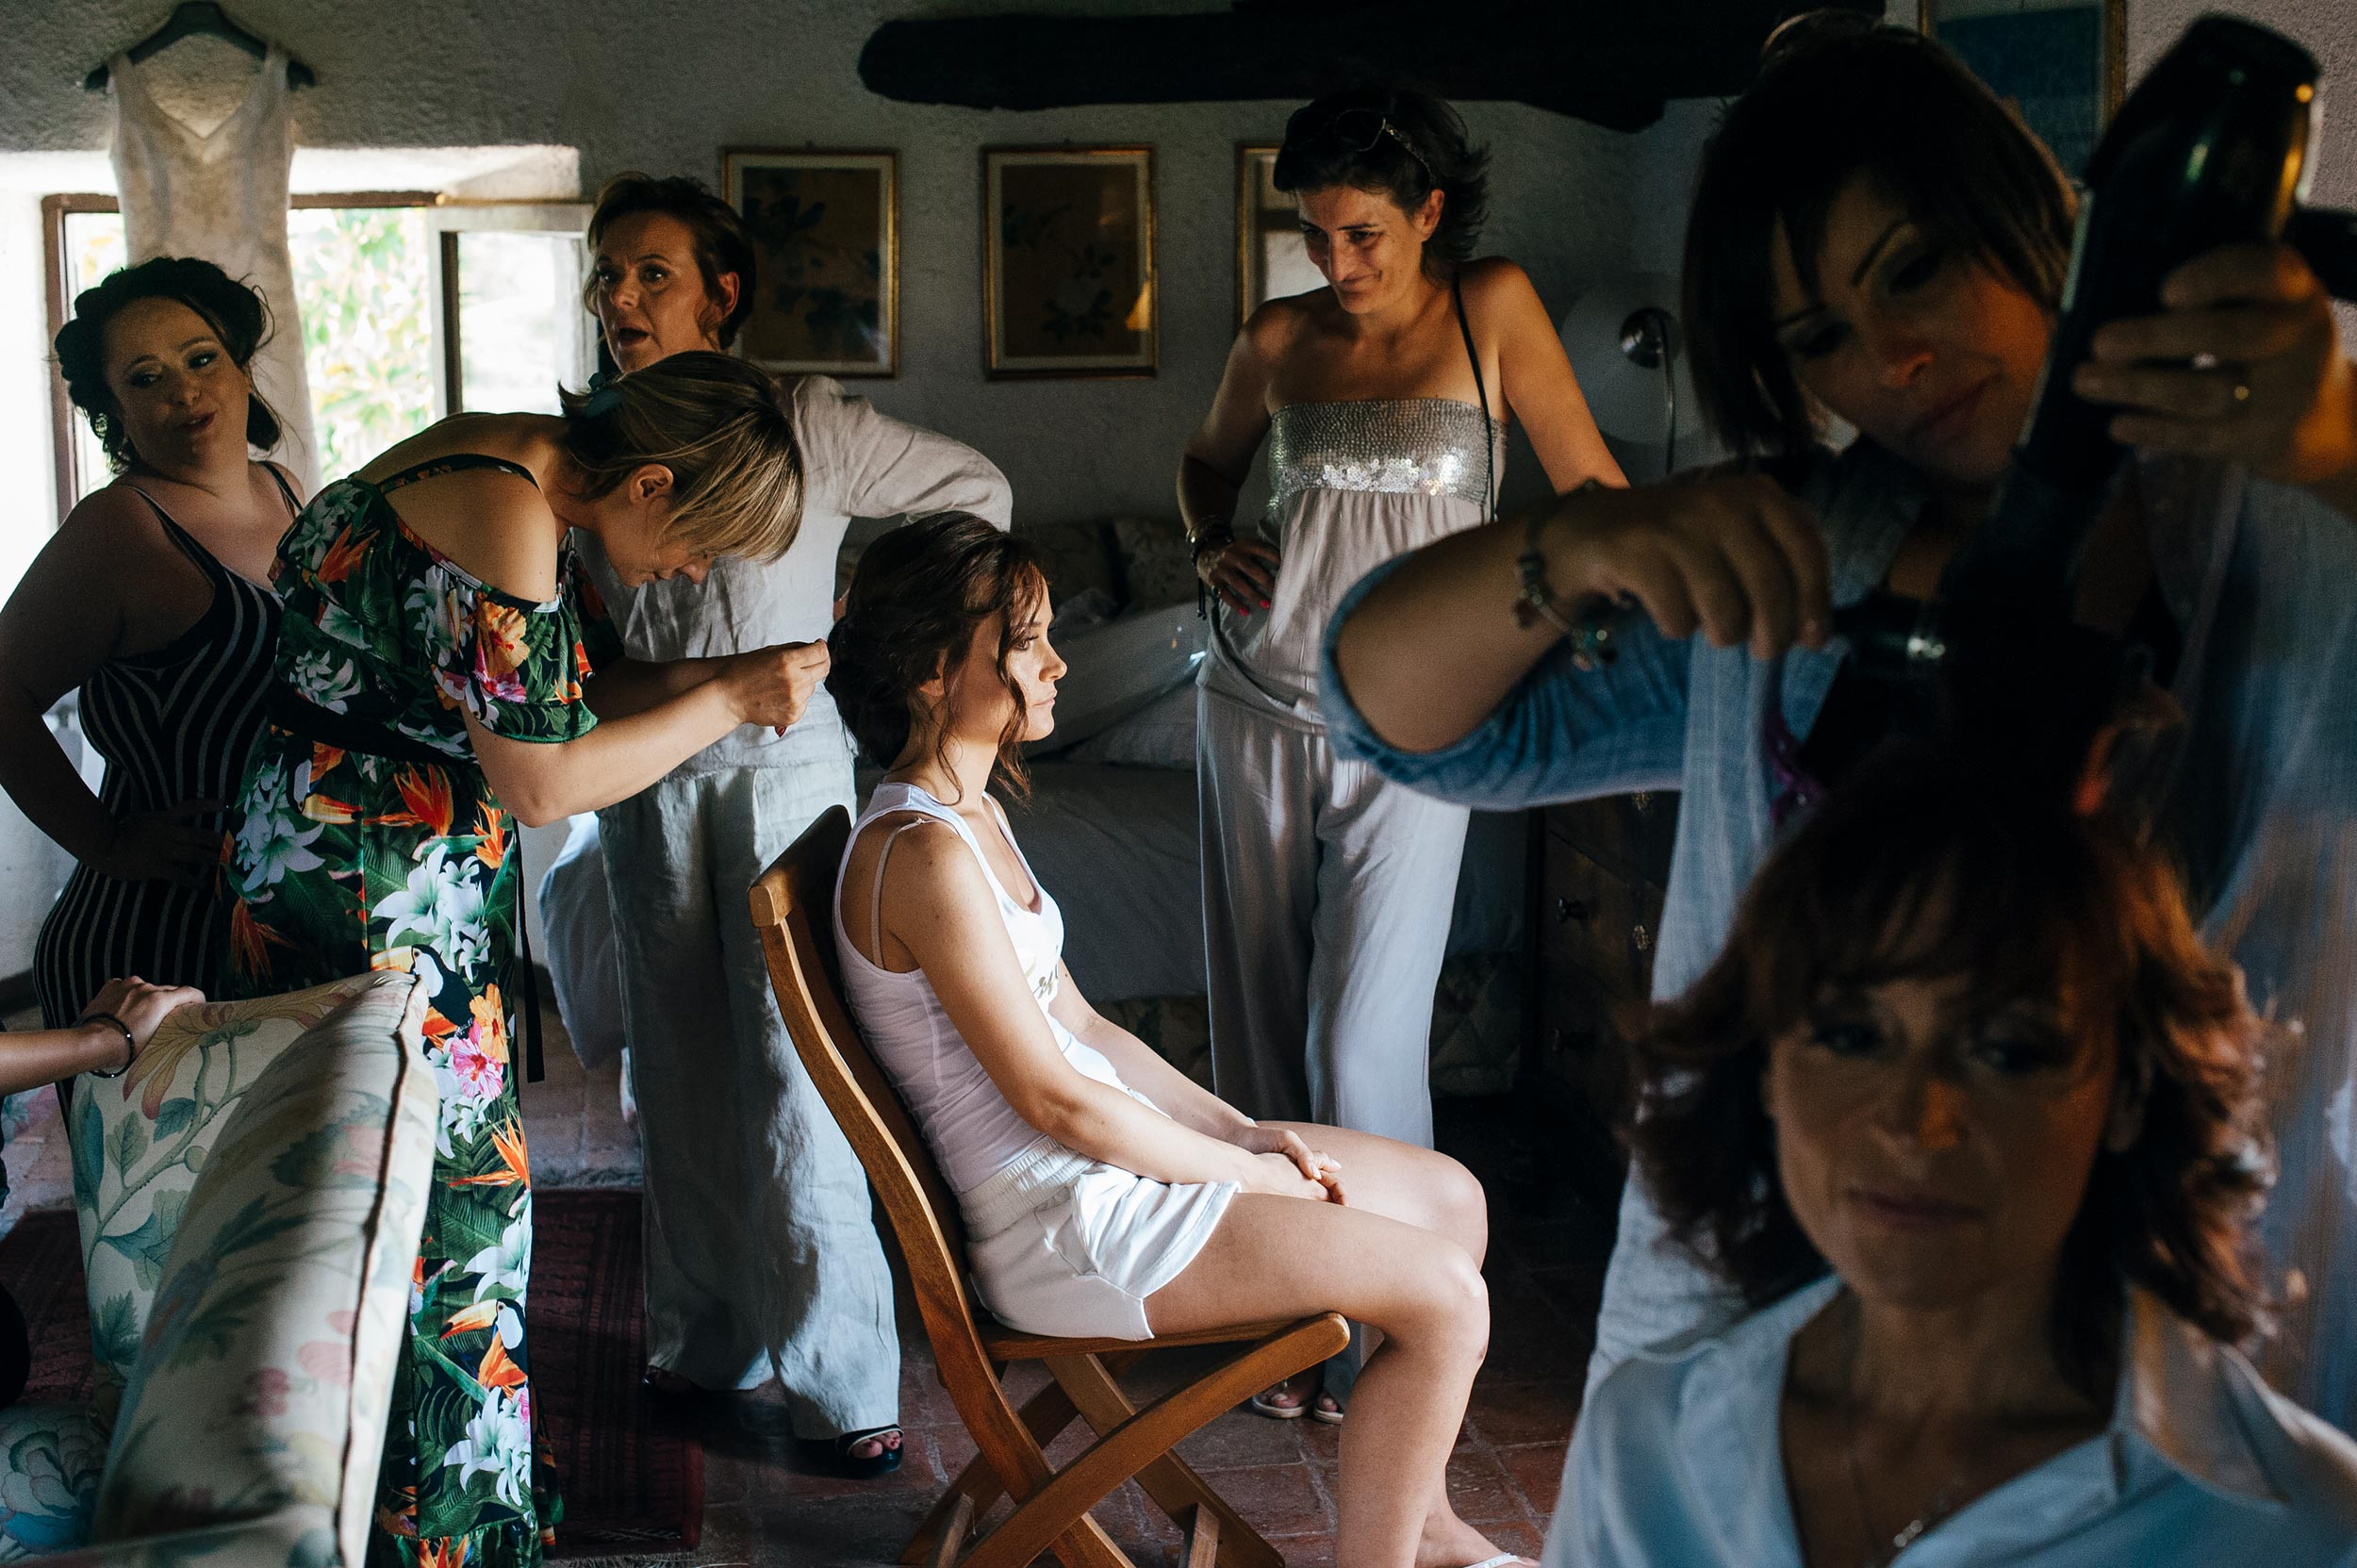 bride-getting-ready-with-many-people-castellina-de-miremont.jpg